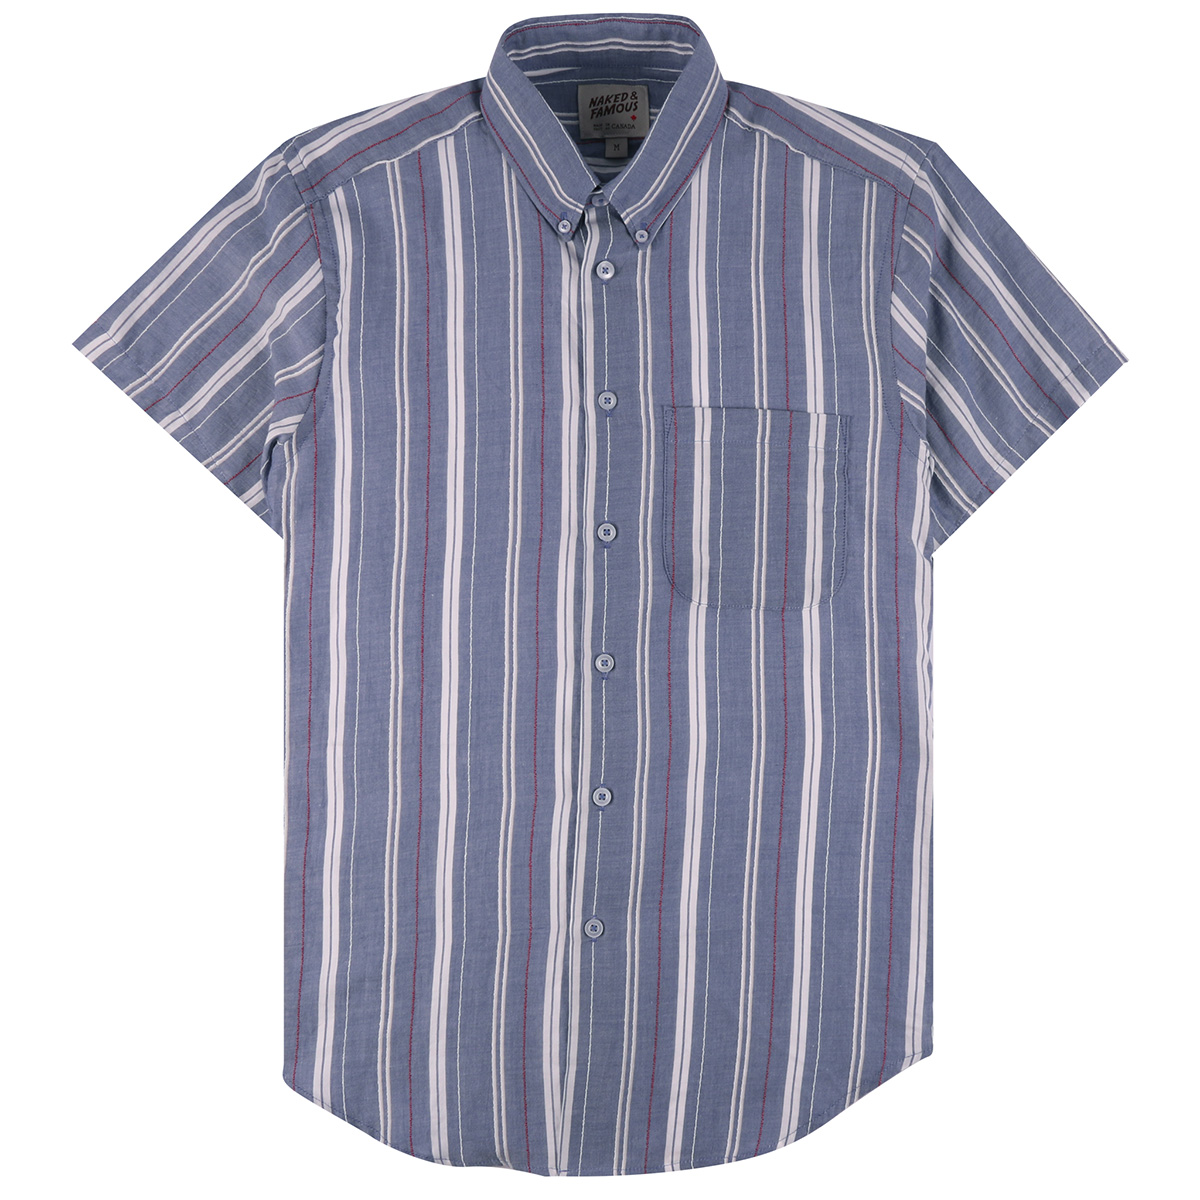 BOUCLÉ STRIPE - BLUE - Short Sleeve Easy Shirt